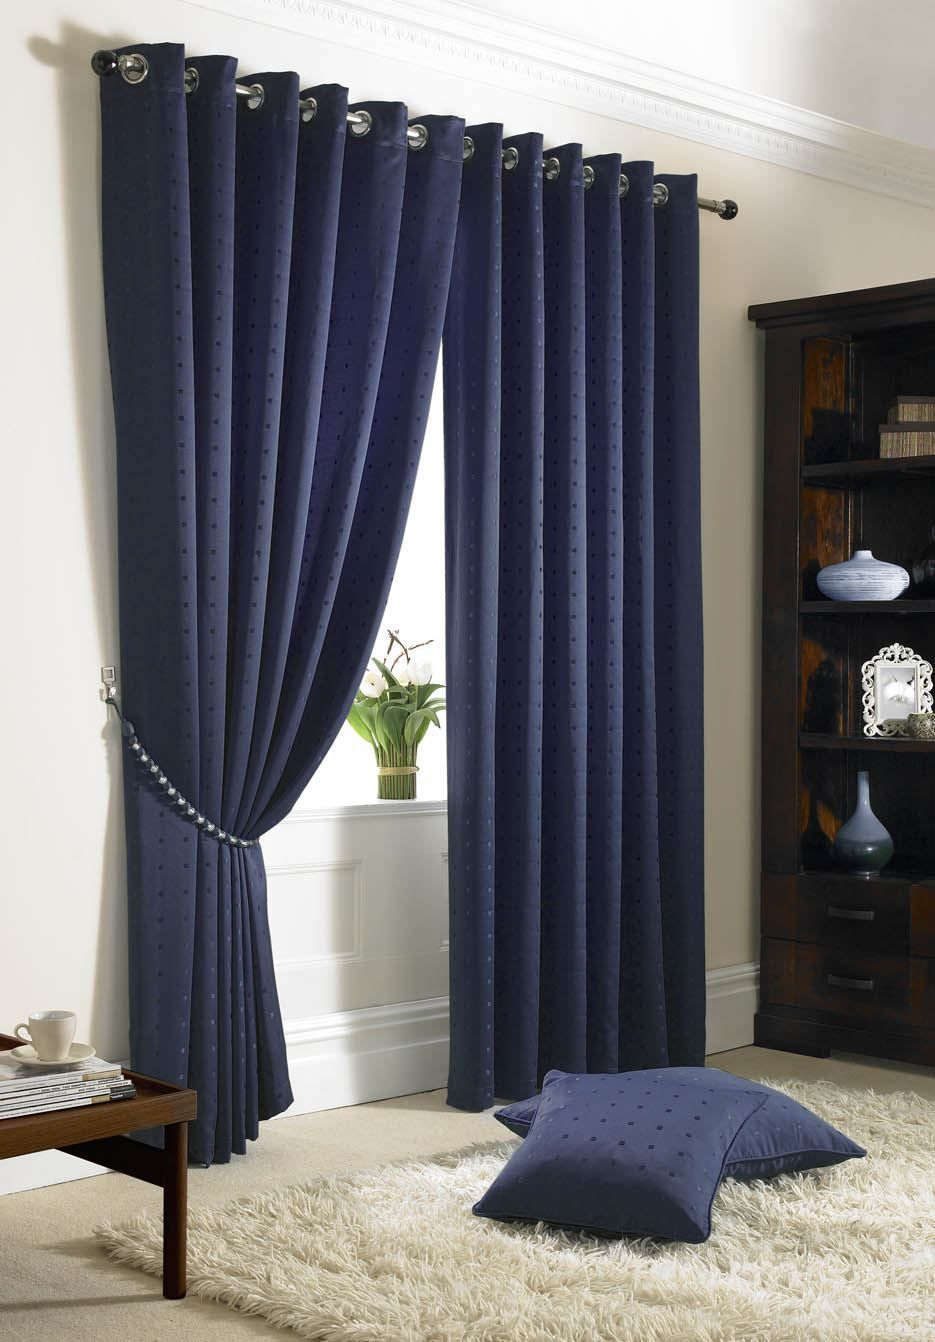 Why Will You Go For The Light Blue Curtains Decorifusta In 2020 Light Blue Curtains Blue Curtains Living Room Baby Blue Bedrooms